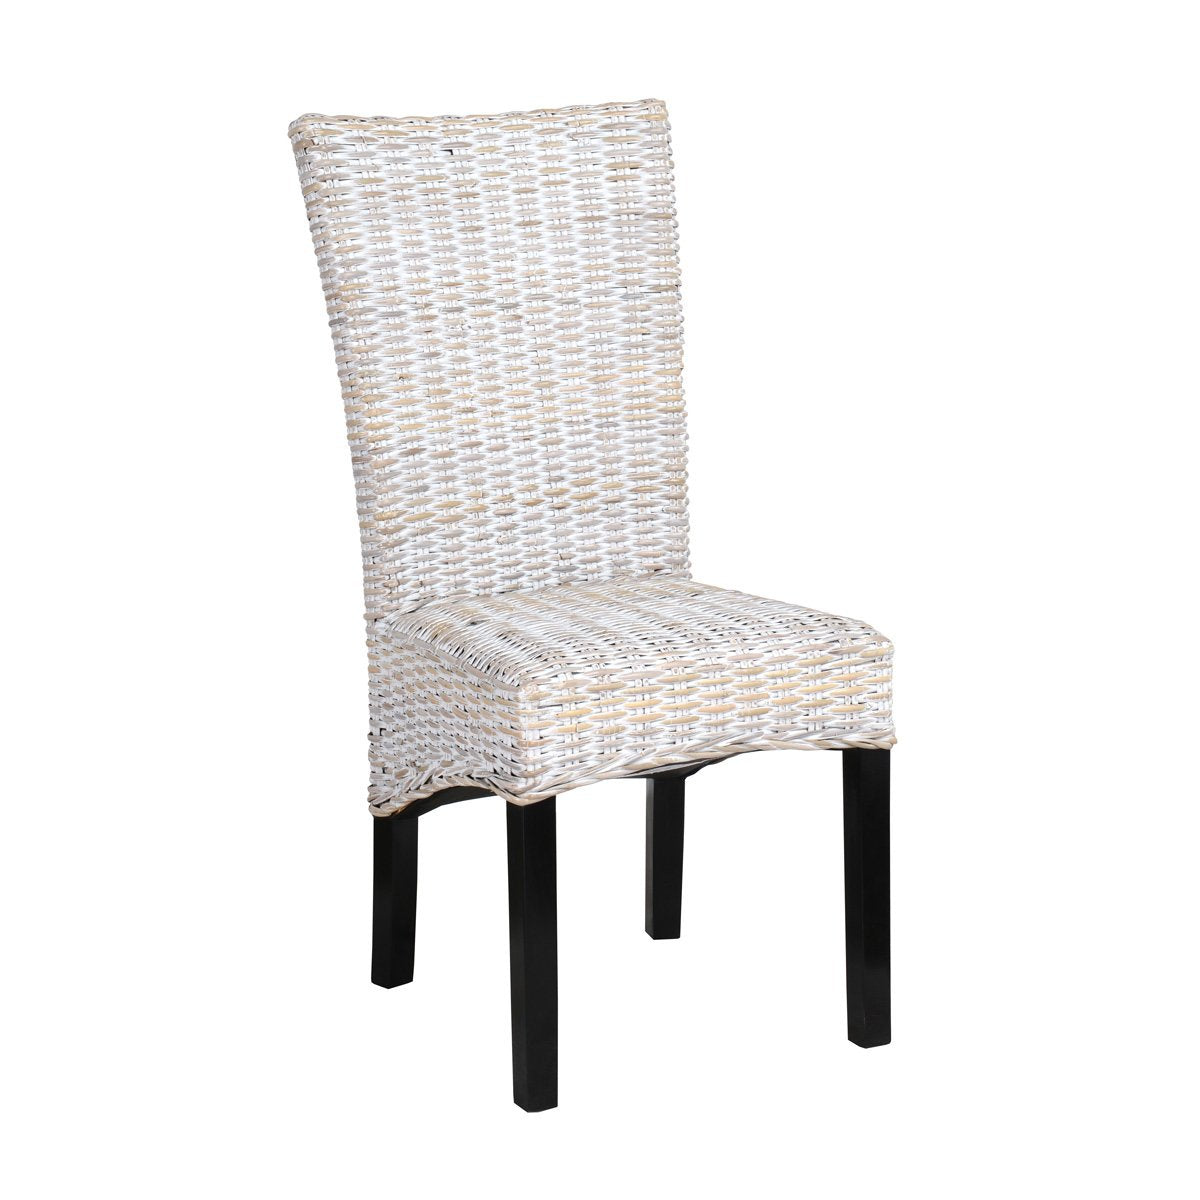 Stupendous Cunningham Dining Chair Peter Andrews Andrewgaddart Wooden Chair Designs For Living Room Andrewgaddartcom